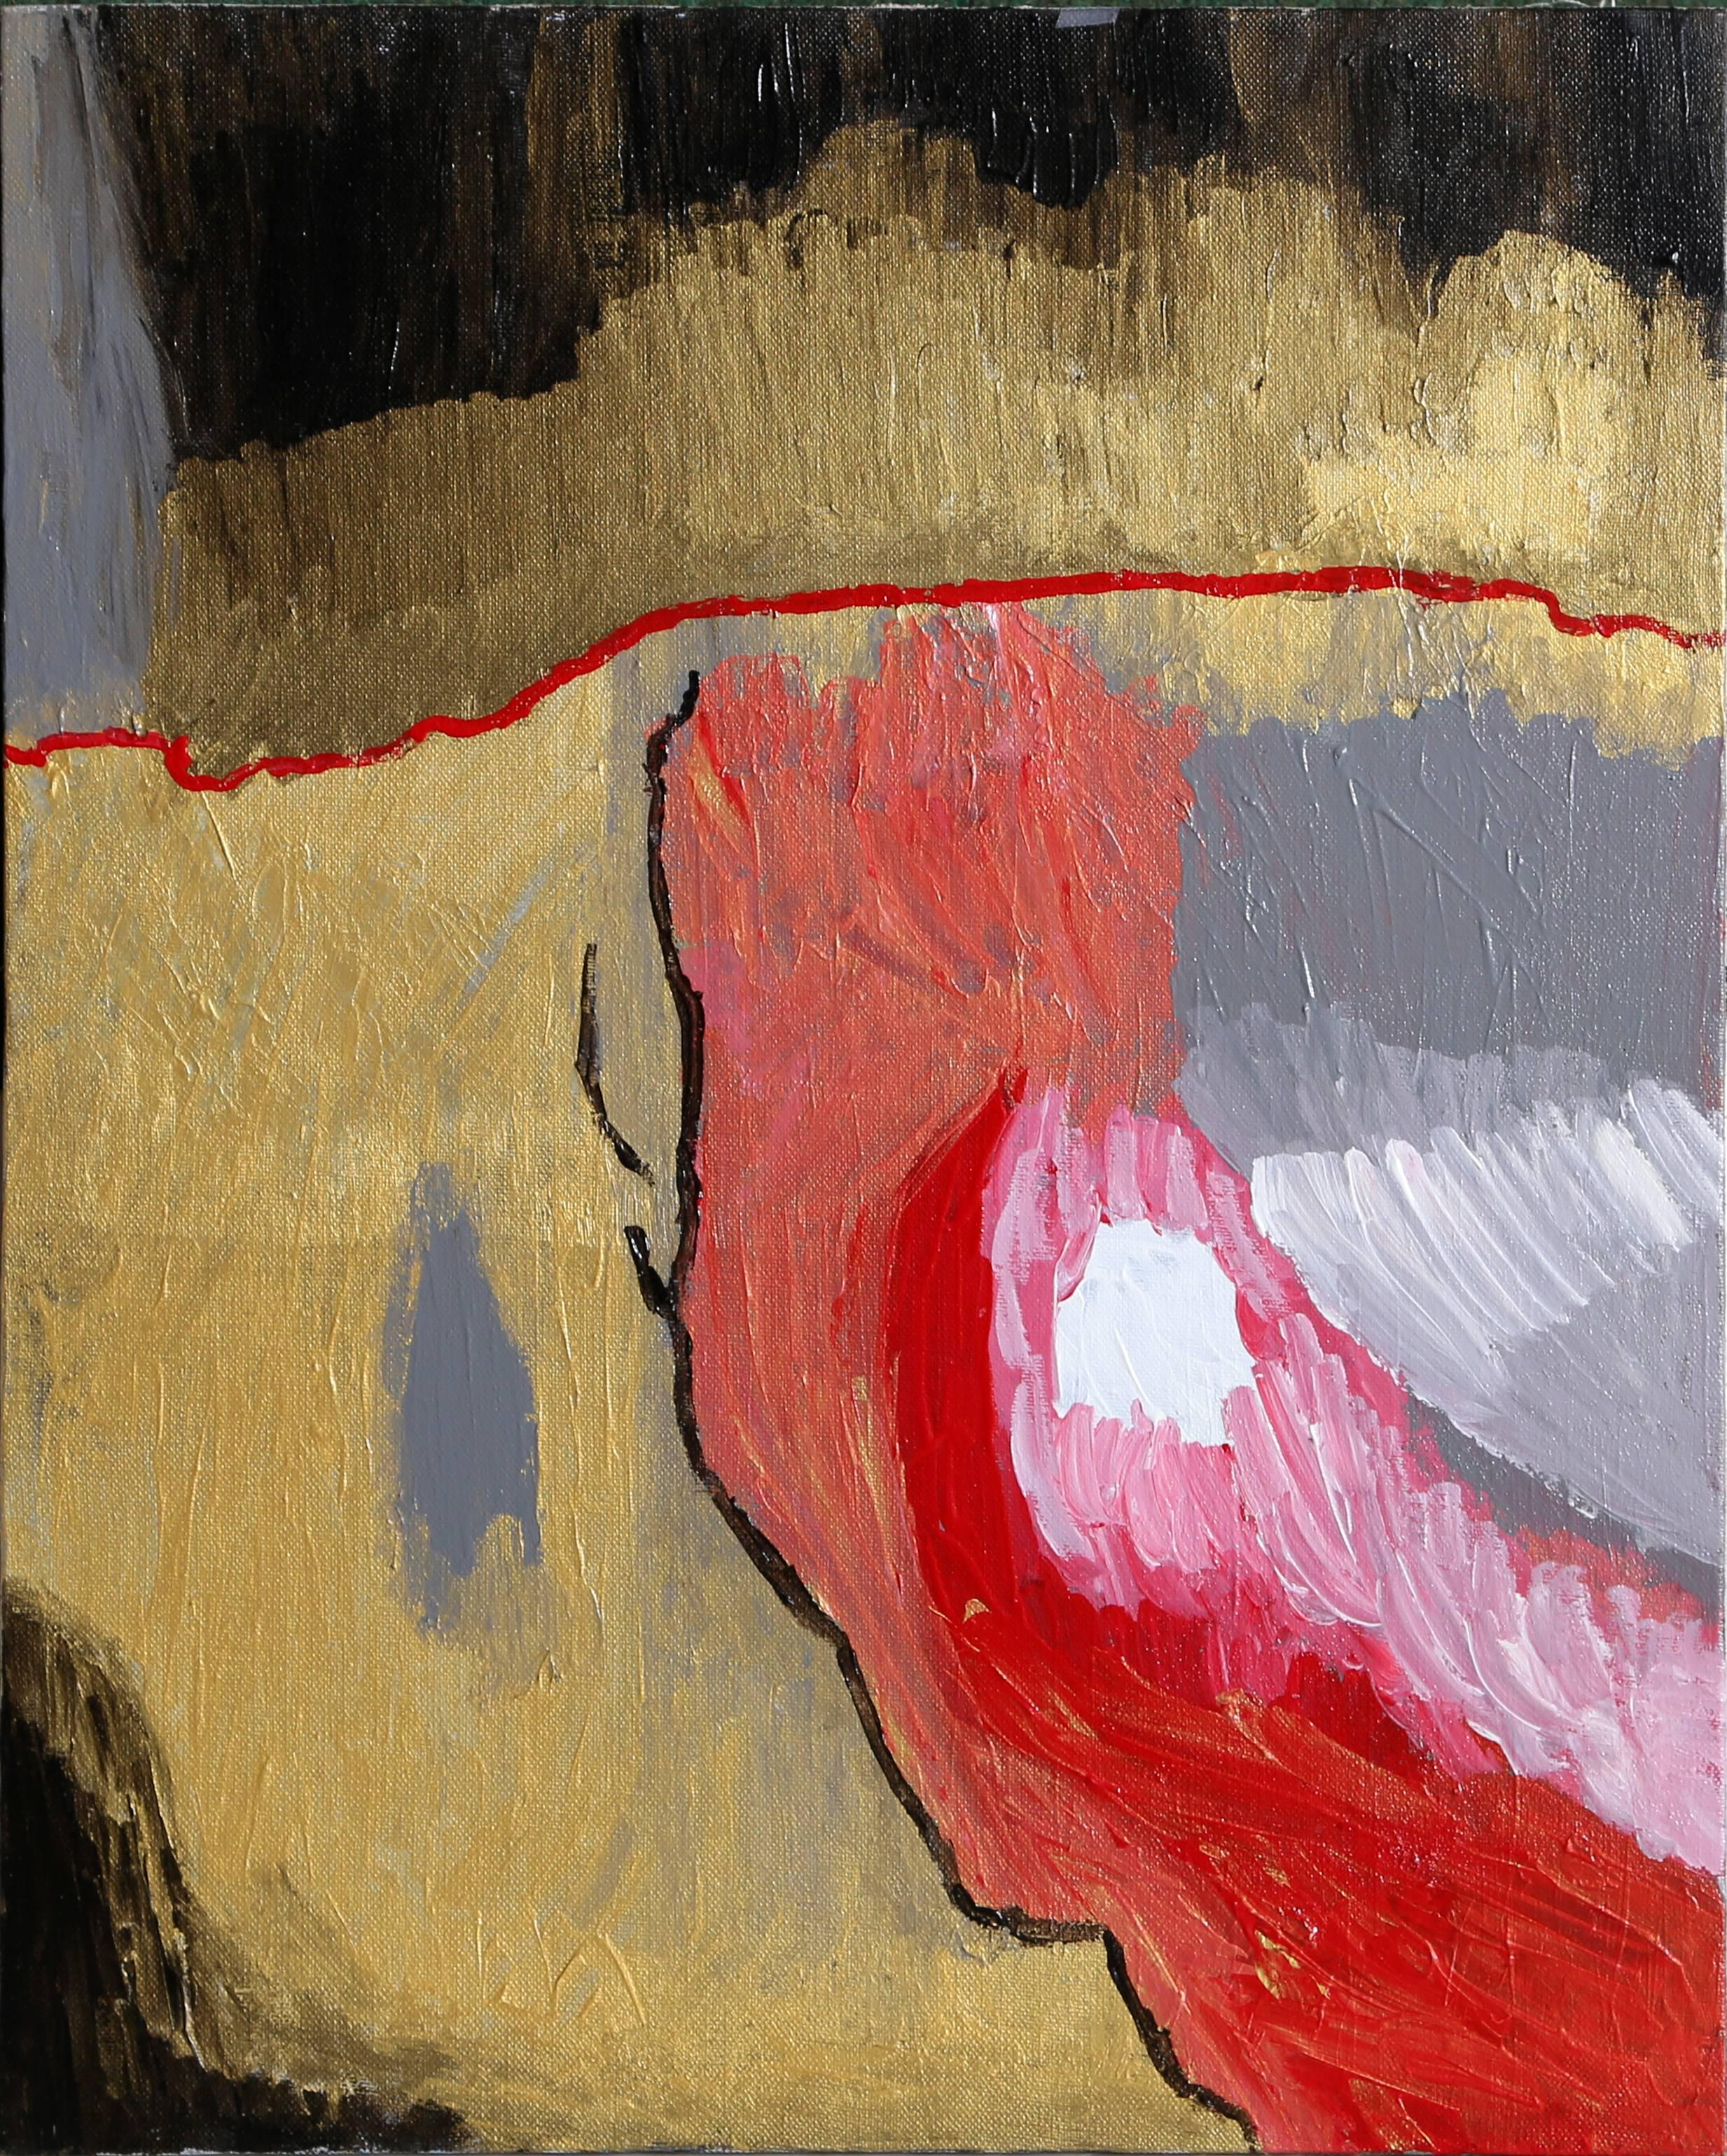 Abstract Expressionist painting by Raymond Parker